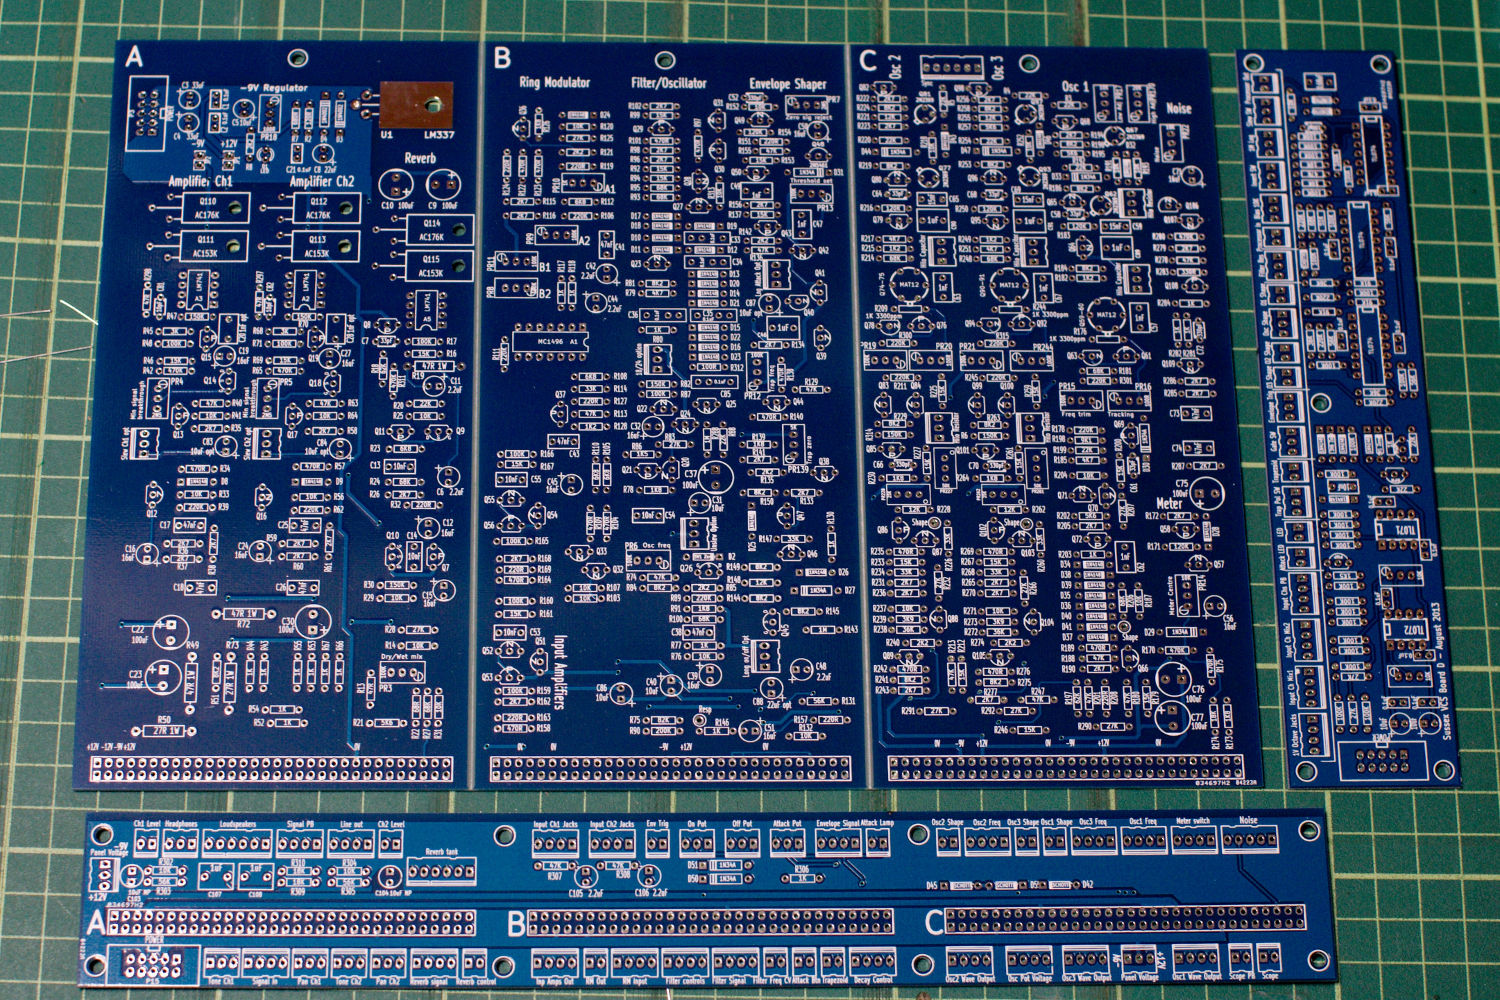 The New Pcbs Sussex Vcs Regulator Mini 9v 075a By Transistor Electronic Projects Circuits Bare Blue Boards